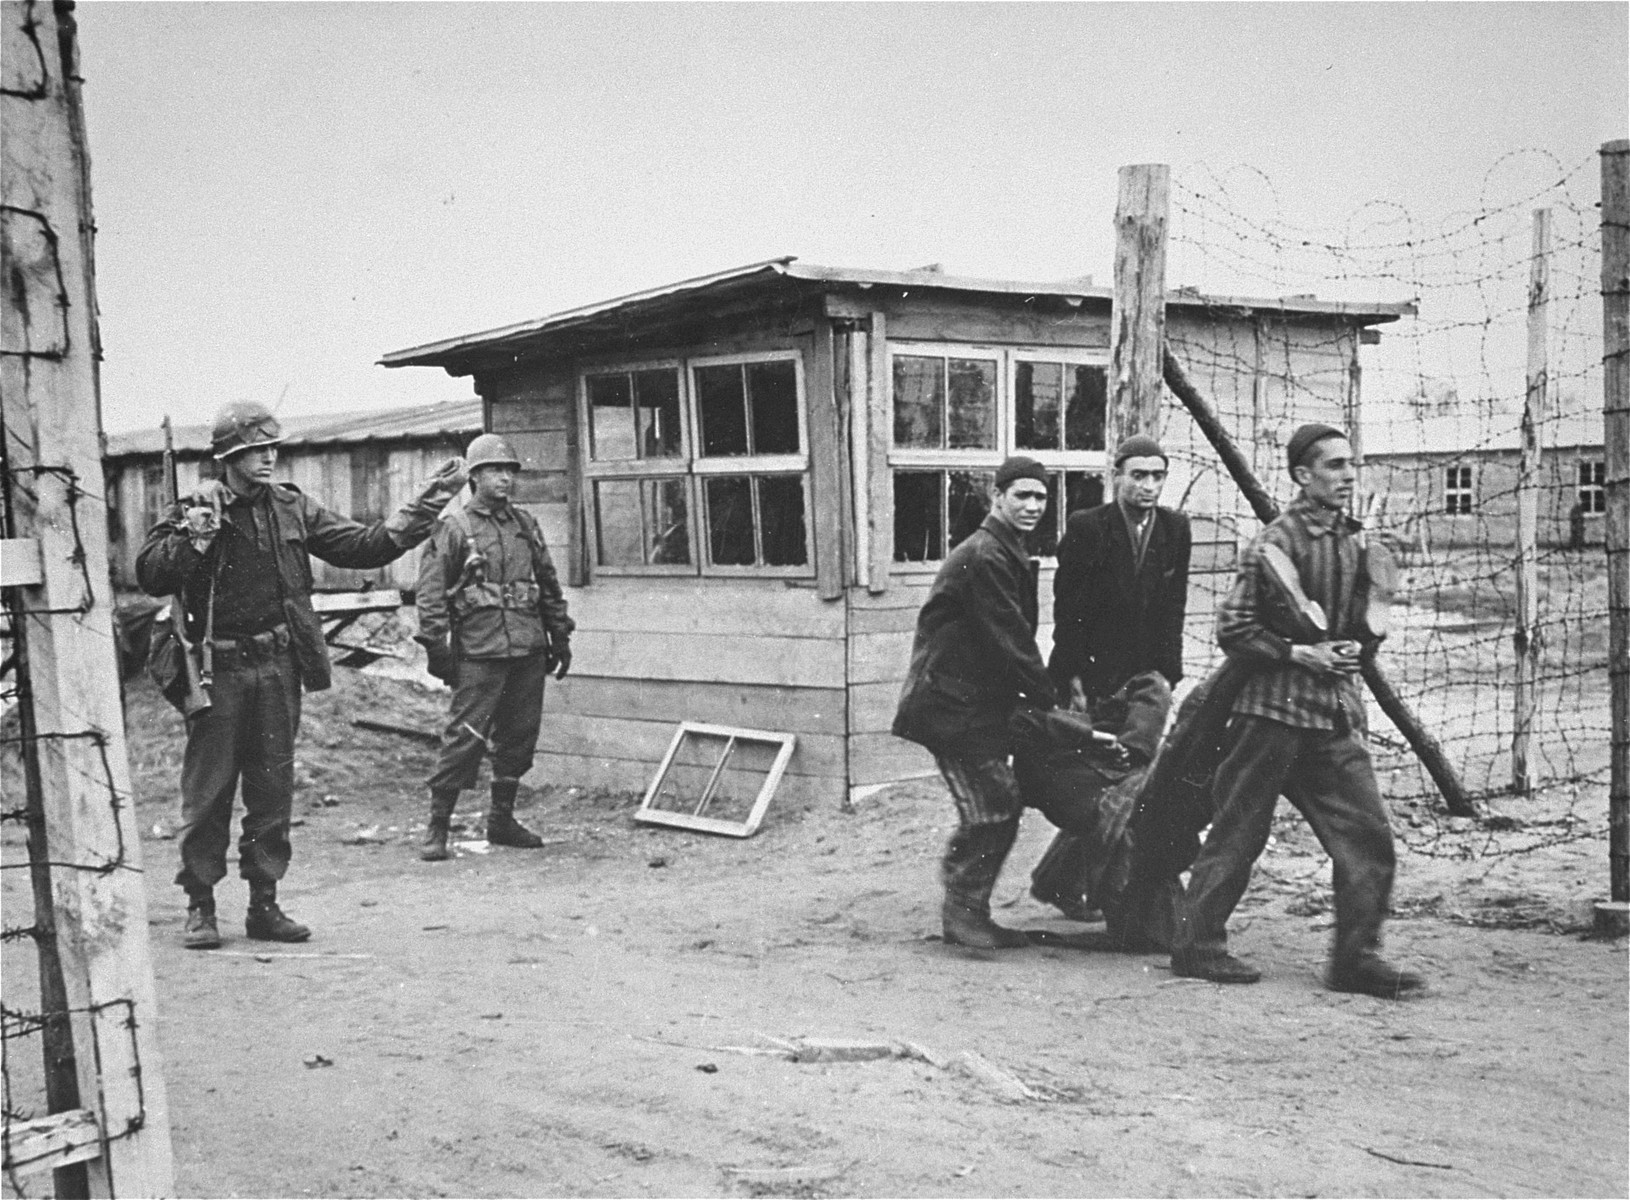 An American guard waves through the gate a group of survivors carrying a comrade who escaped from Woebbelin a few days before its liberation by the 82nd airborne division, 9th US Army.    The man dropped from starvation outside the enclosure as he tried to make his way back to a source of food.